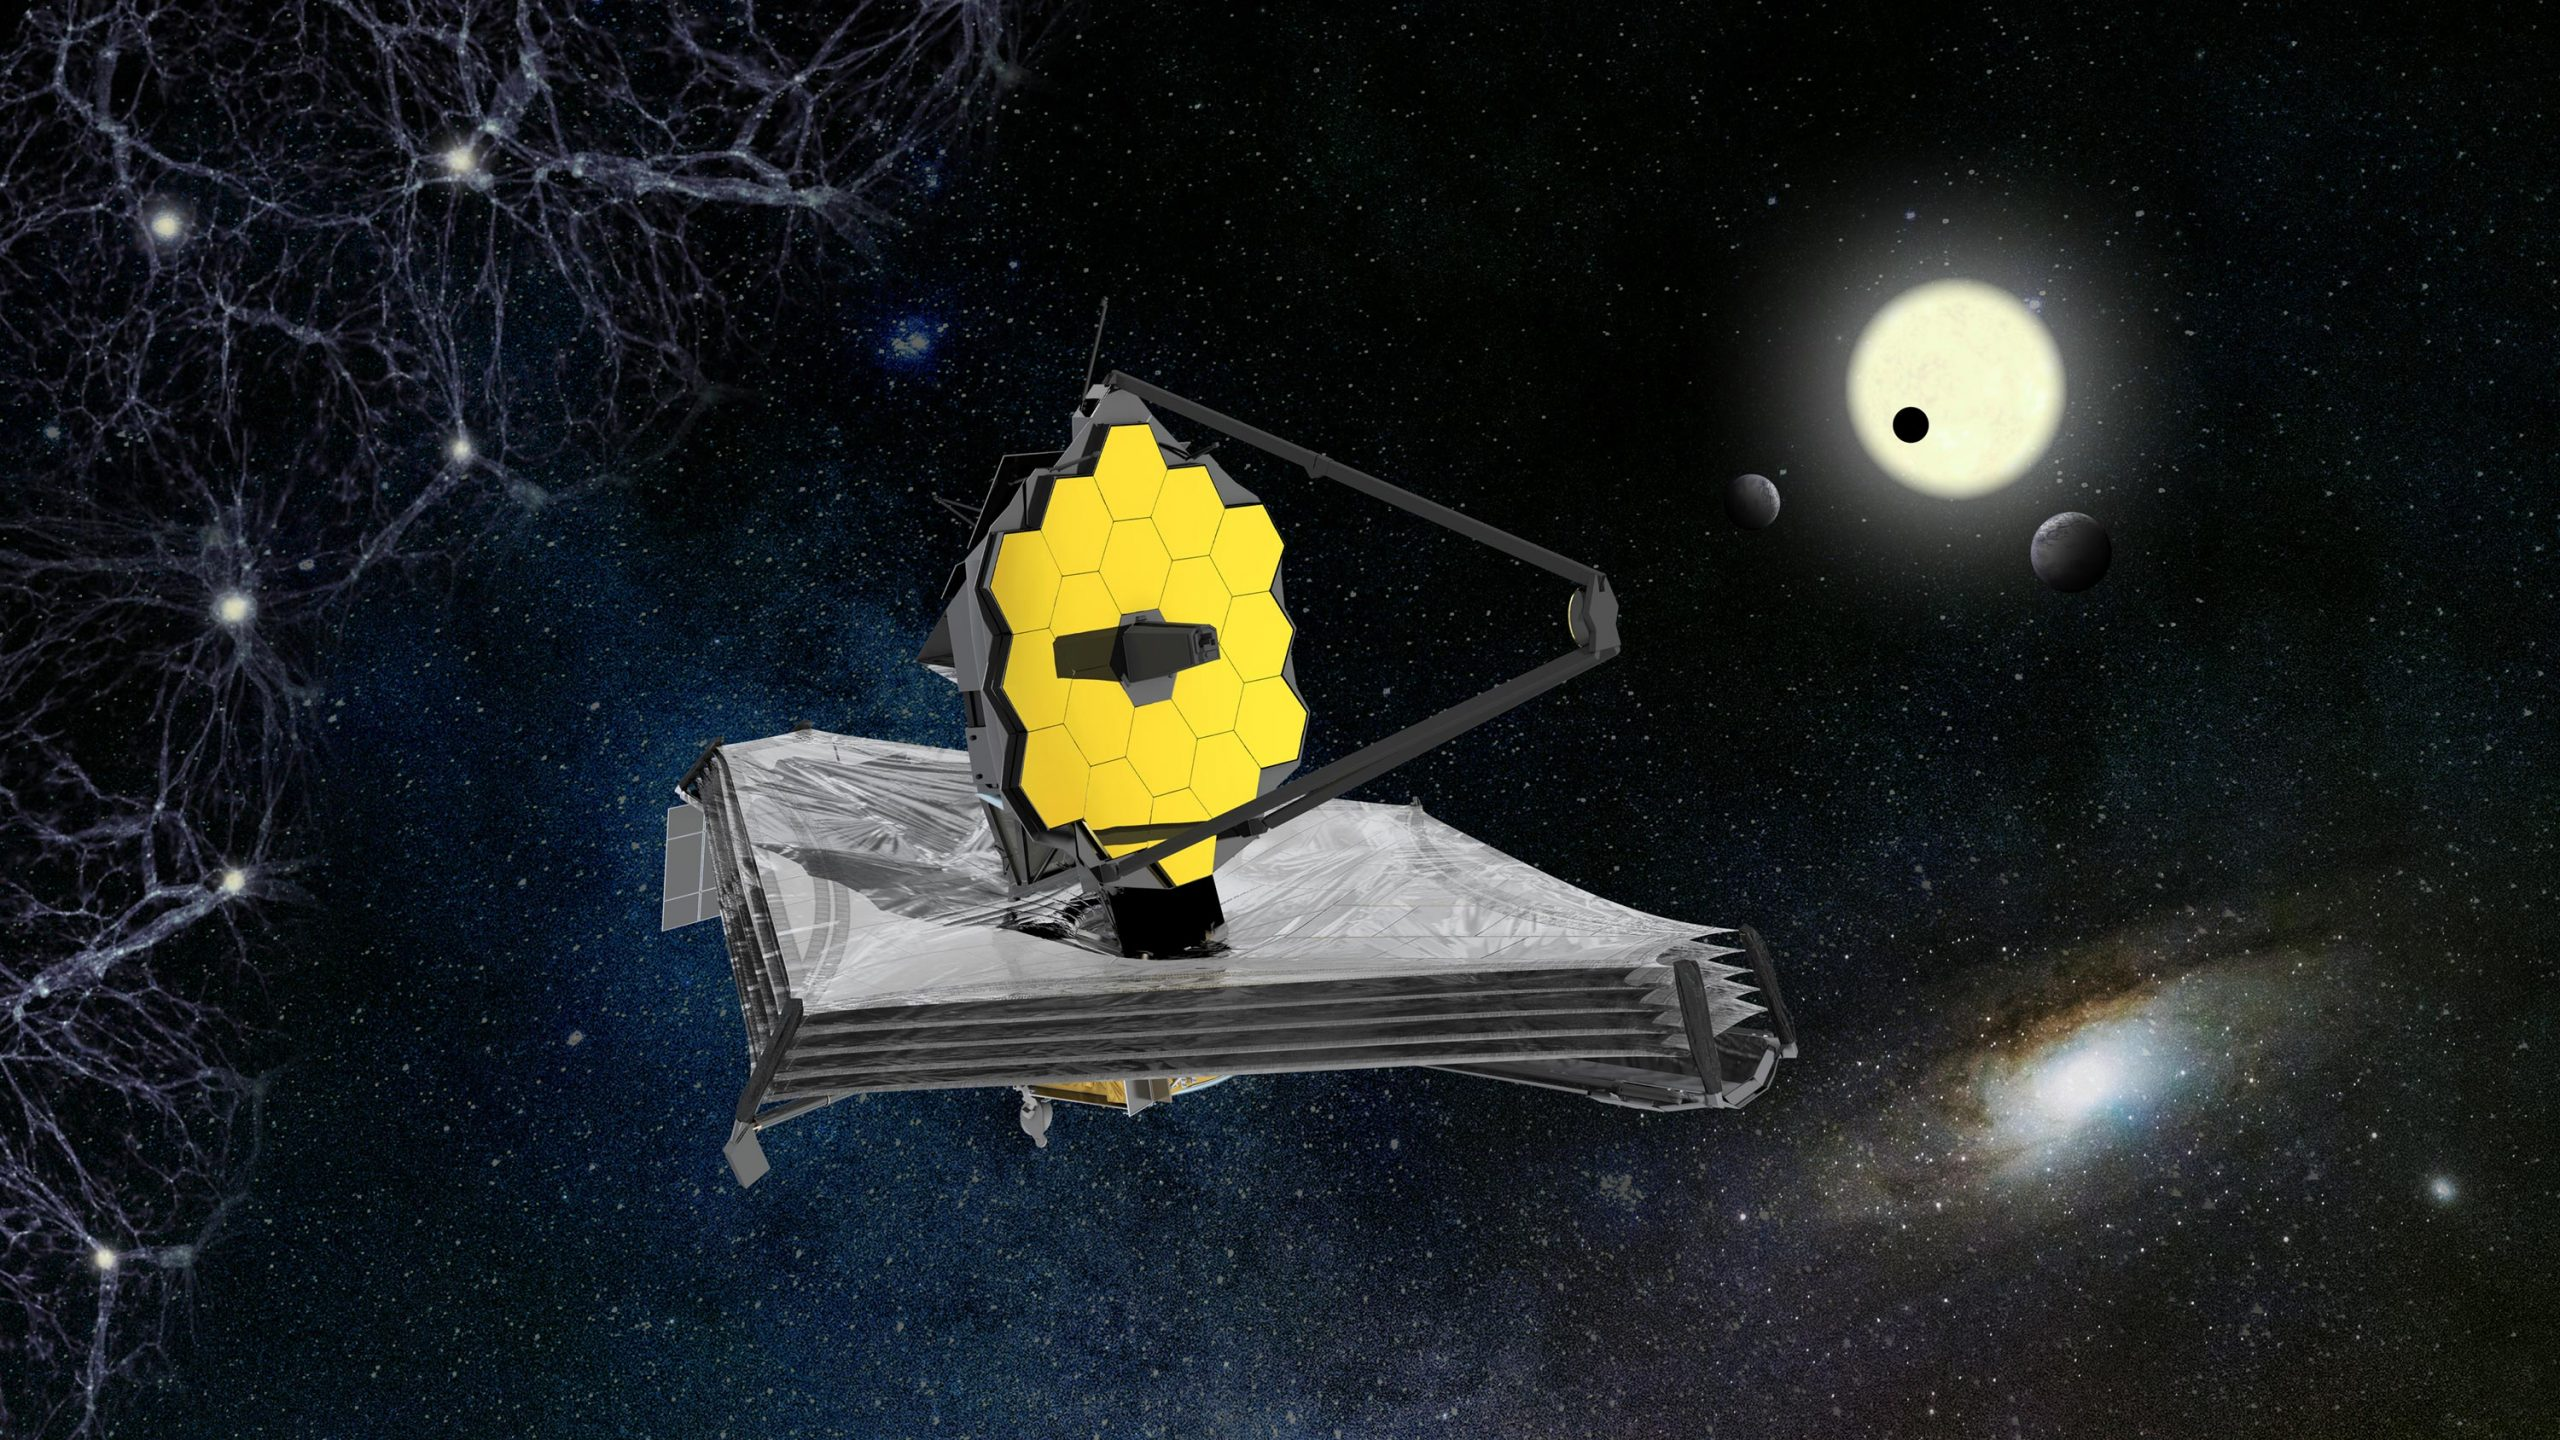 James Webb Space Telescope Artists Impression scaled, The Greatest Origin Story of All: NASA Webb Space Telescope – 29 Days on the Edge [Video], , ,Days, Edge, Greatest, nasa, Origin, science news, SPACE, spacelivenews, Story, telescope, video, Webb, SpaceLiveNews